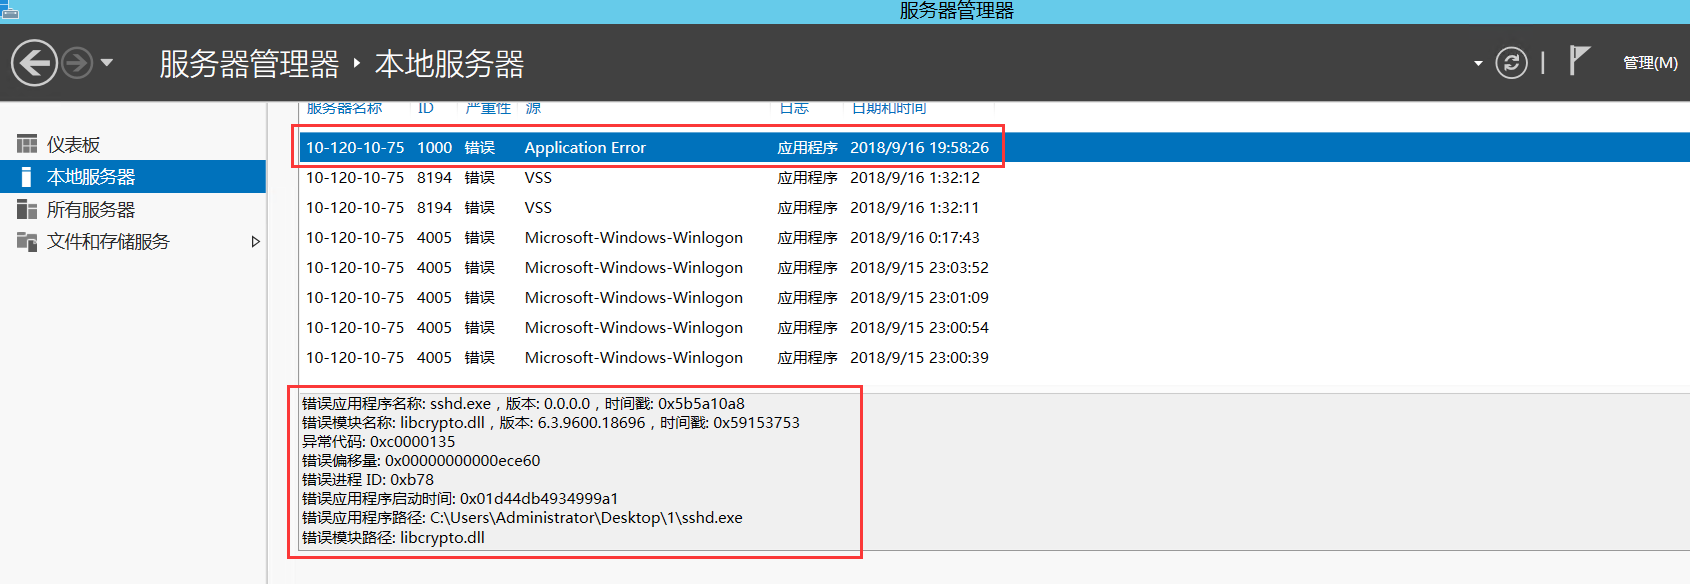 Connection reset by 127 0 0 1 port 22 on Windows Server 2012